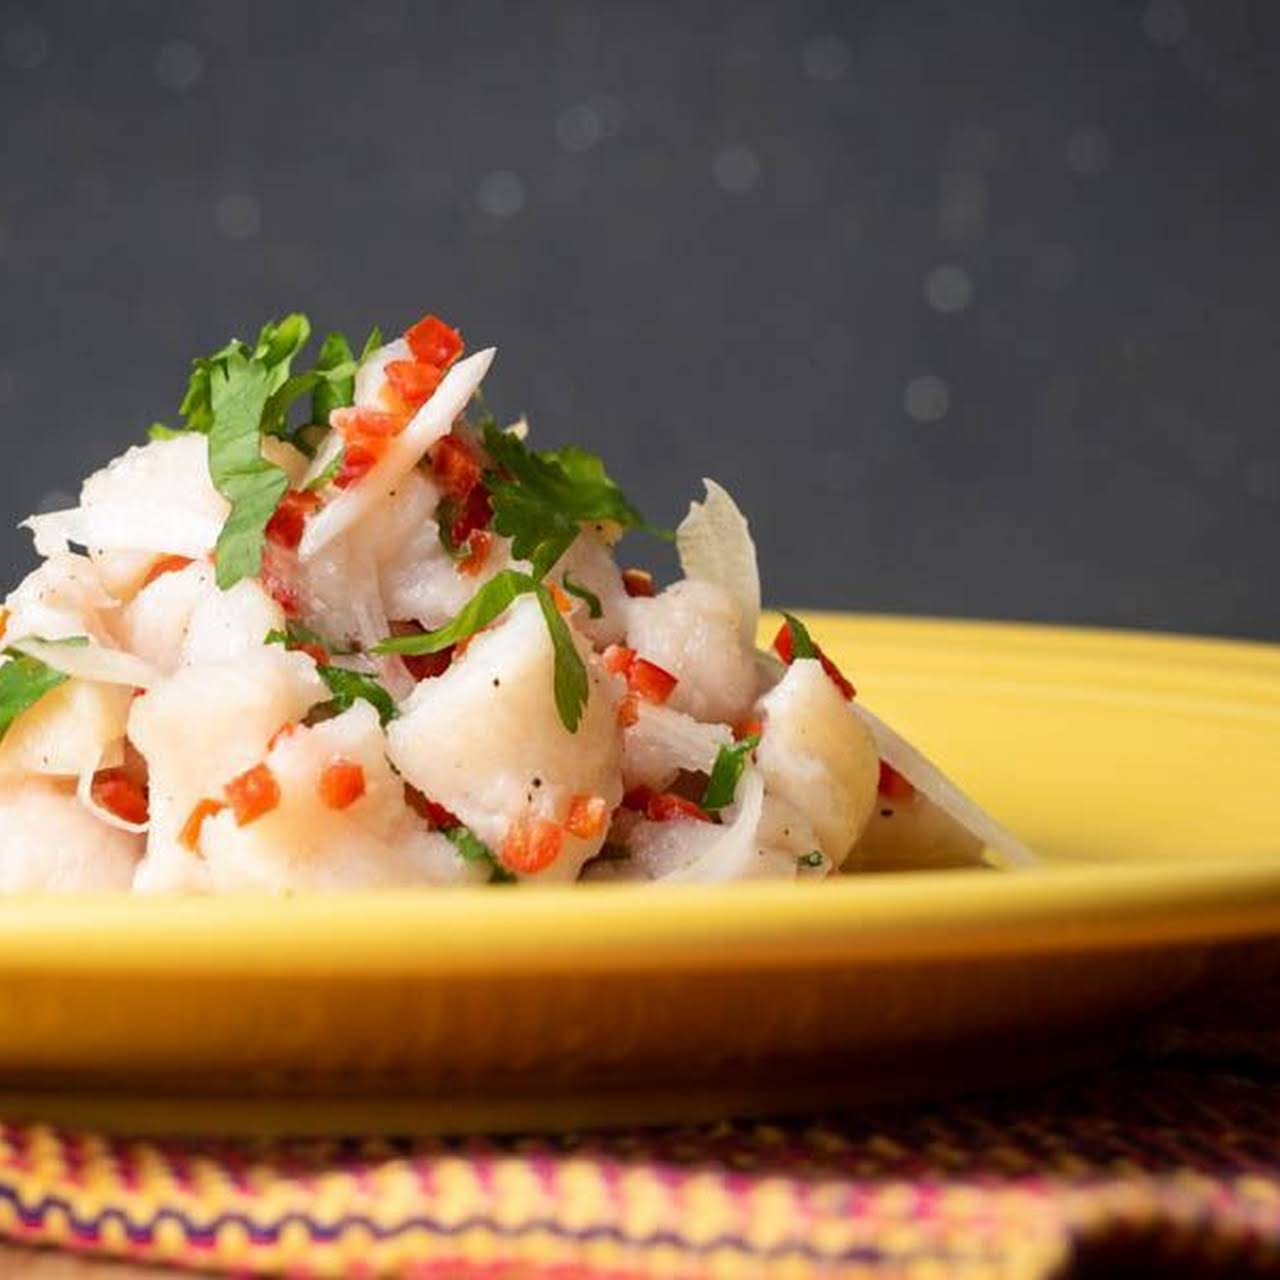 How to Make Ceviche – Step by Step Guide